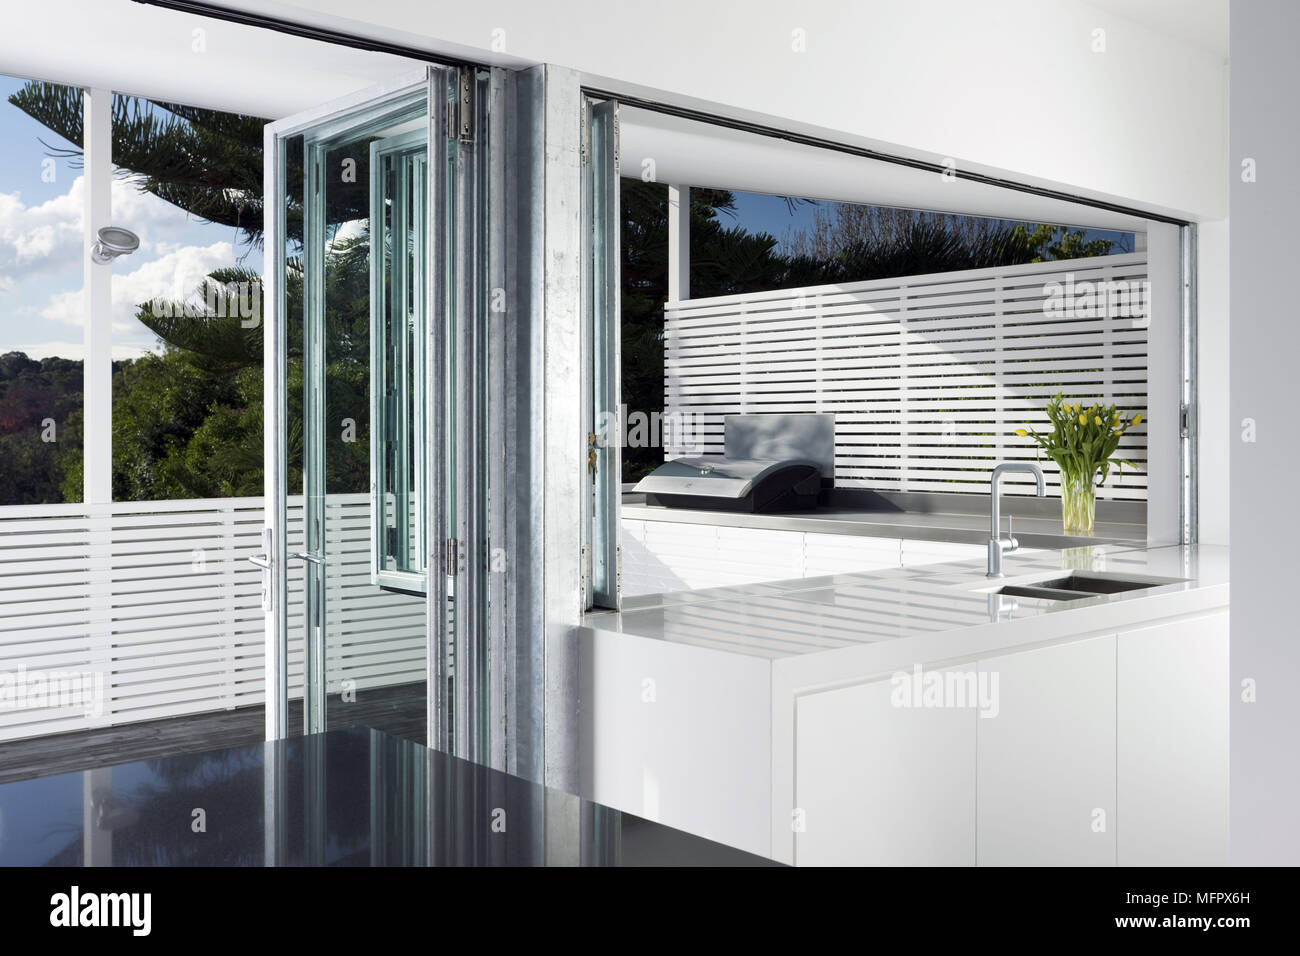 ba4aa9ee6caf Modern white kitchen with concertina door to balcony terrace Stock ...